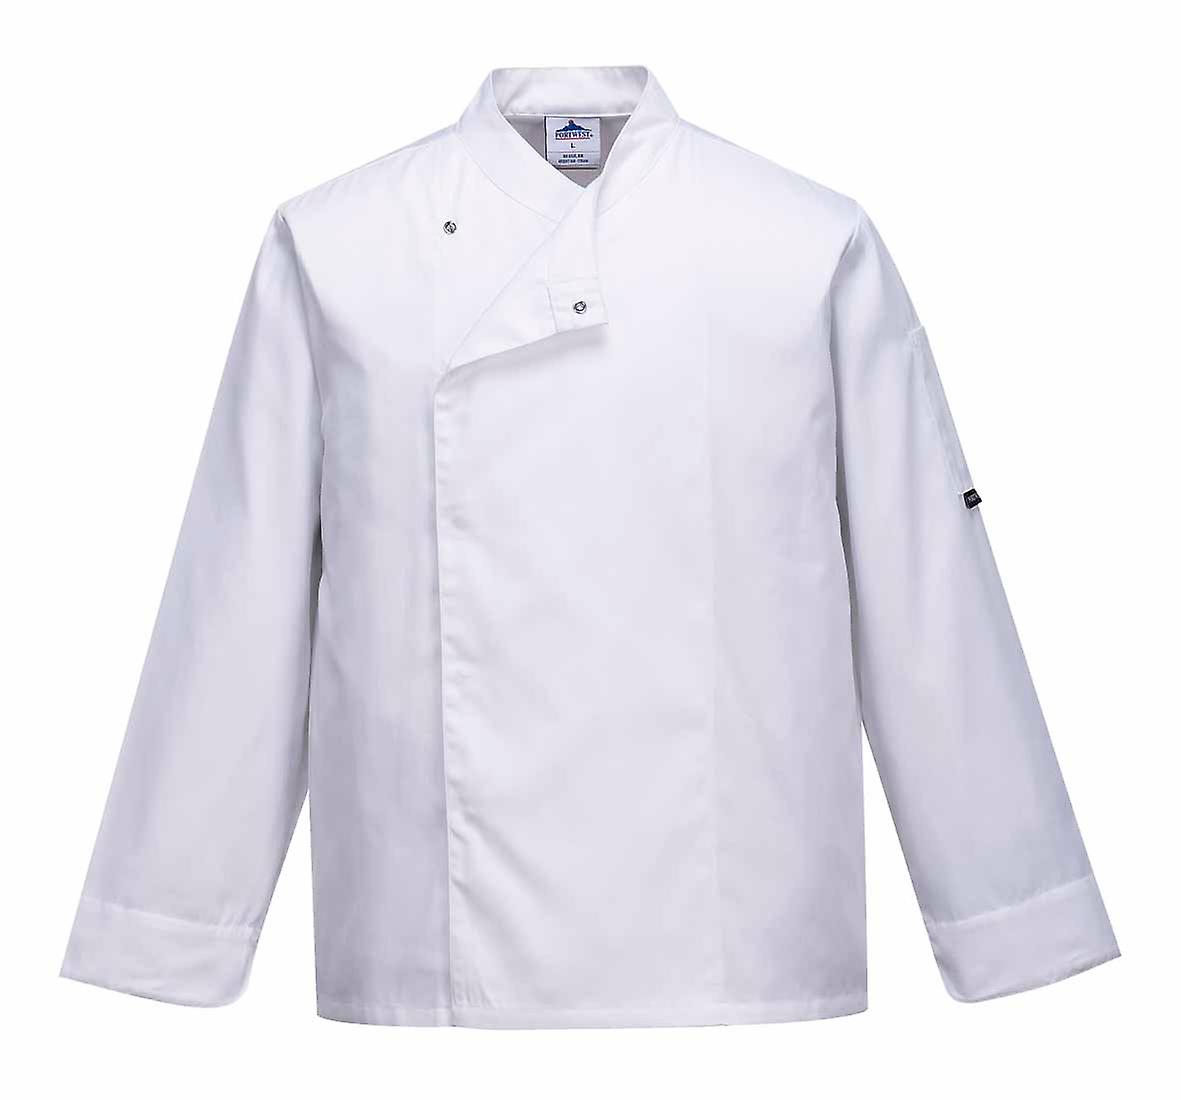 Portwest - Cross-Over Chefs Kitchen Workwear Jacket